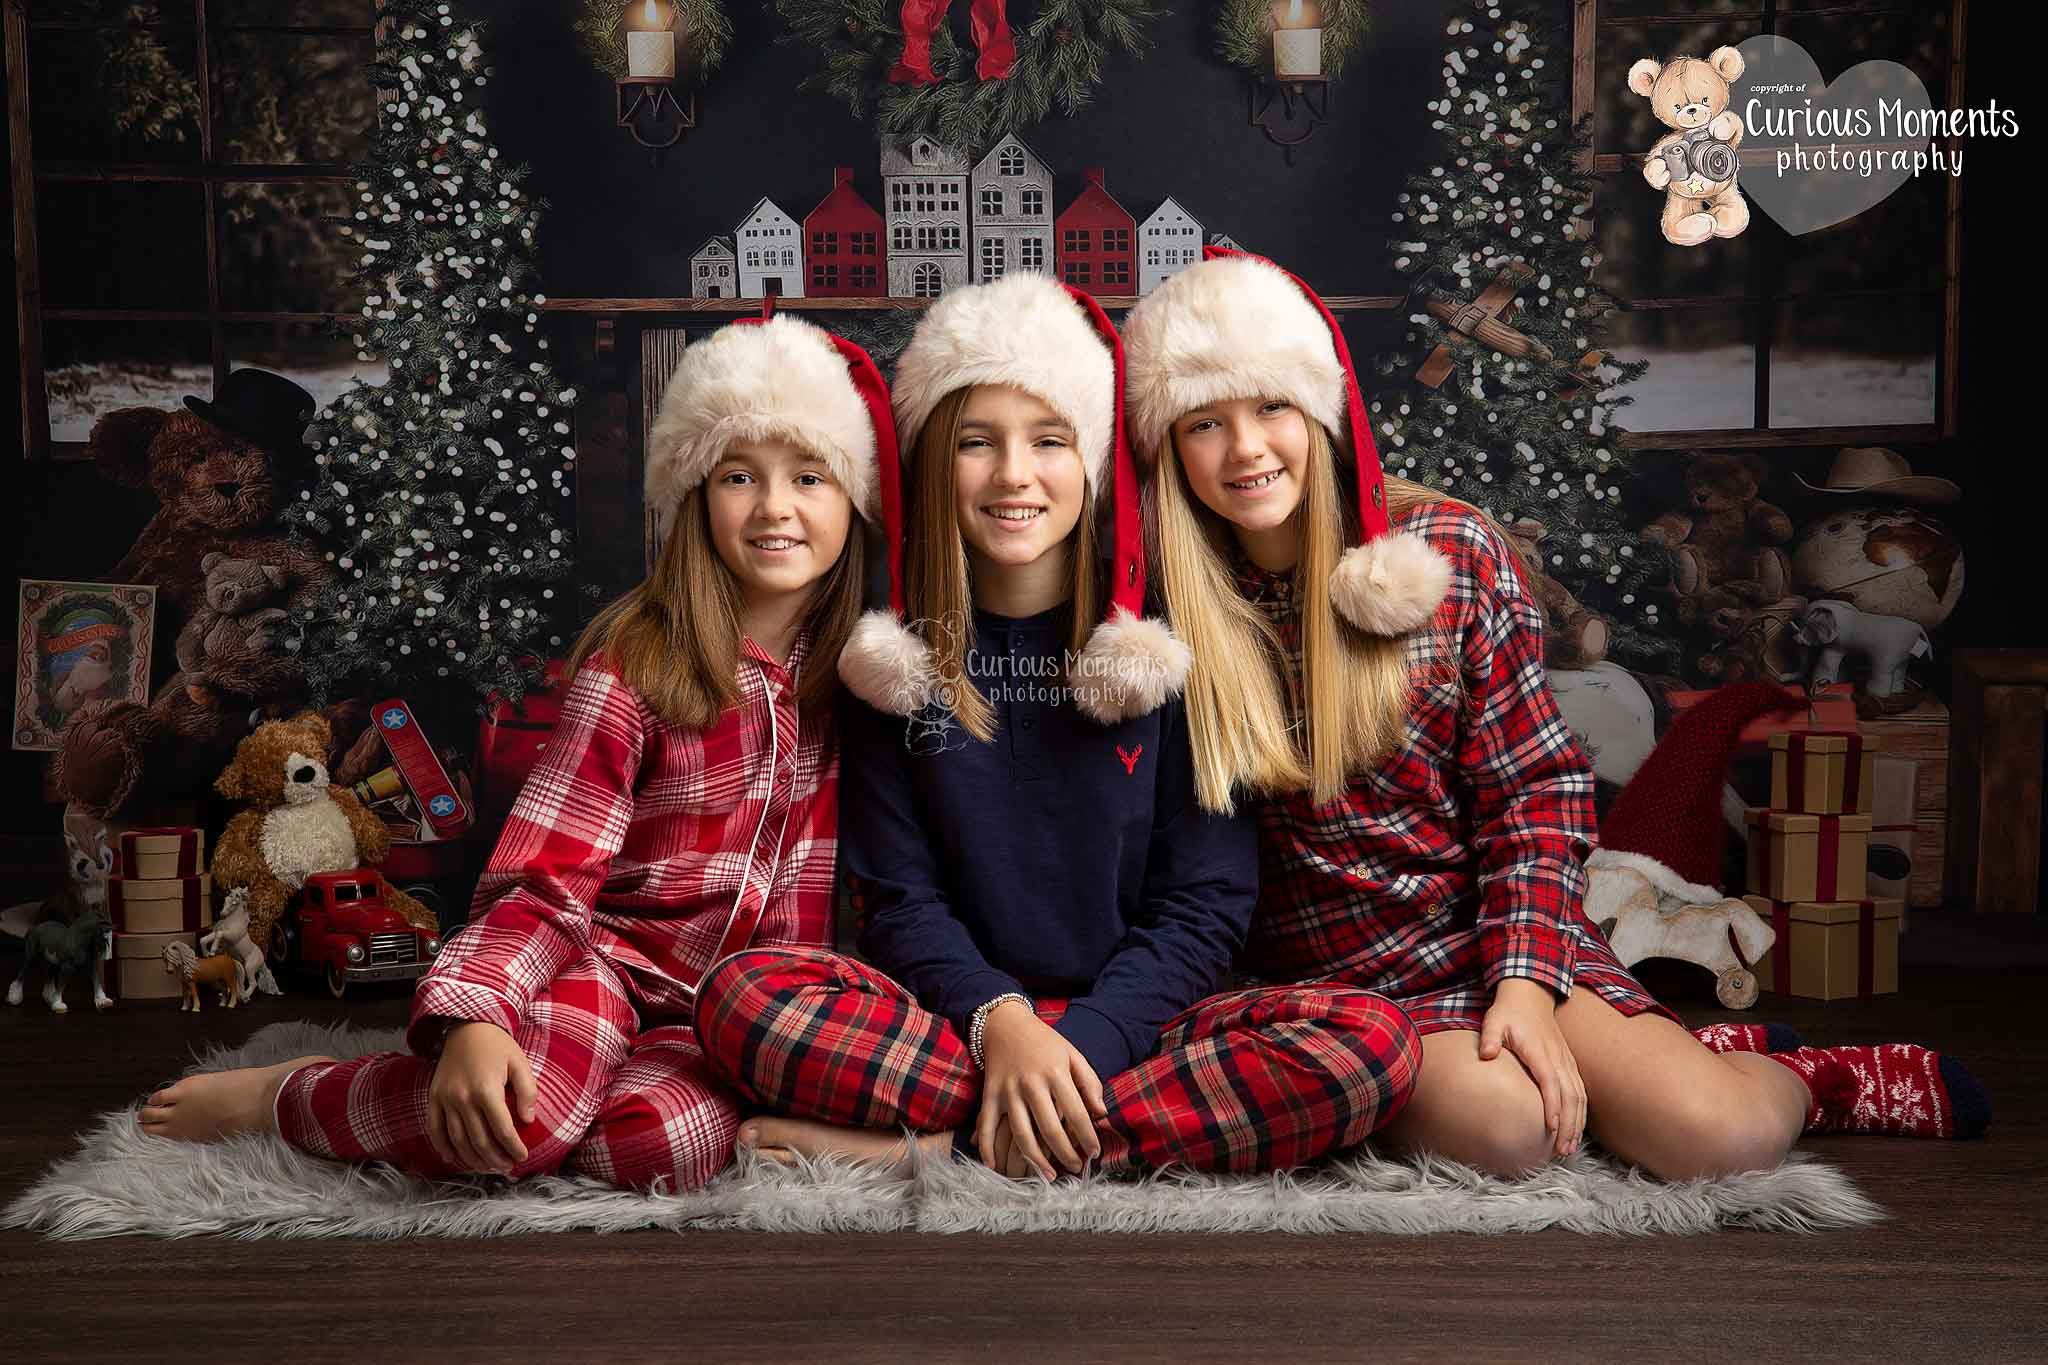 teenage girls in christmas pjs and christmas hats sat in a festive room with xmas trees, decortaions and presents during their chistmas mini session